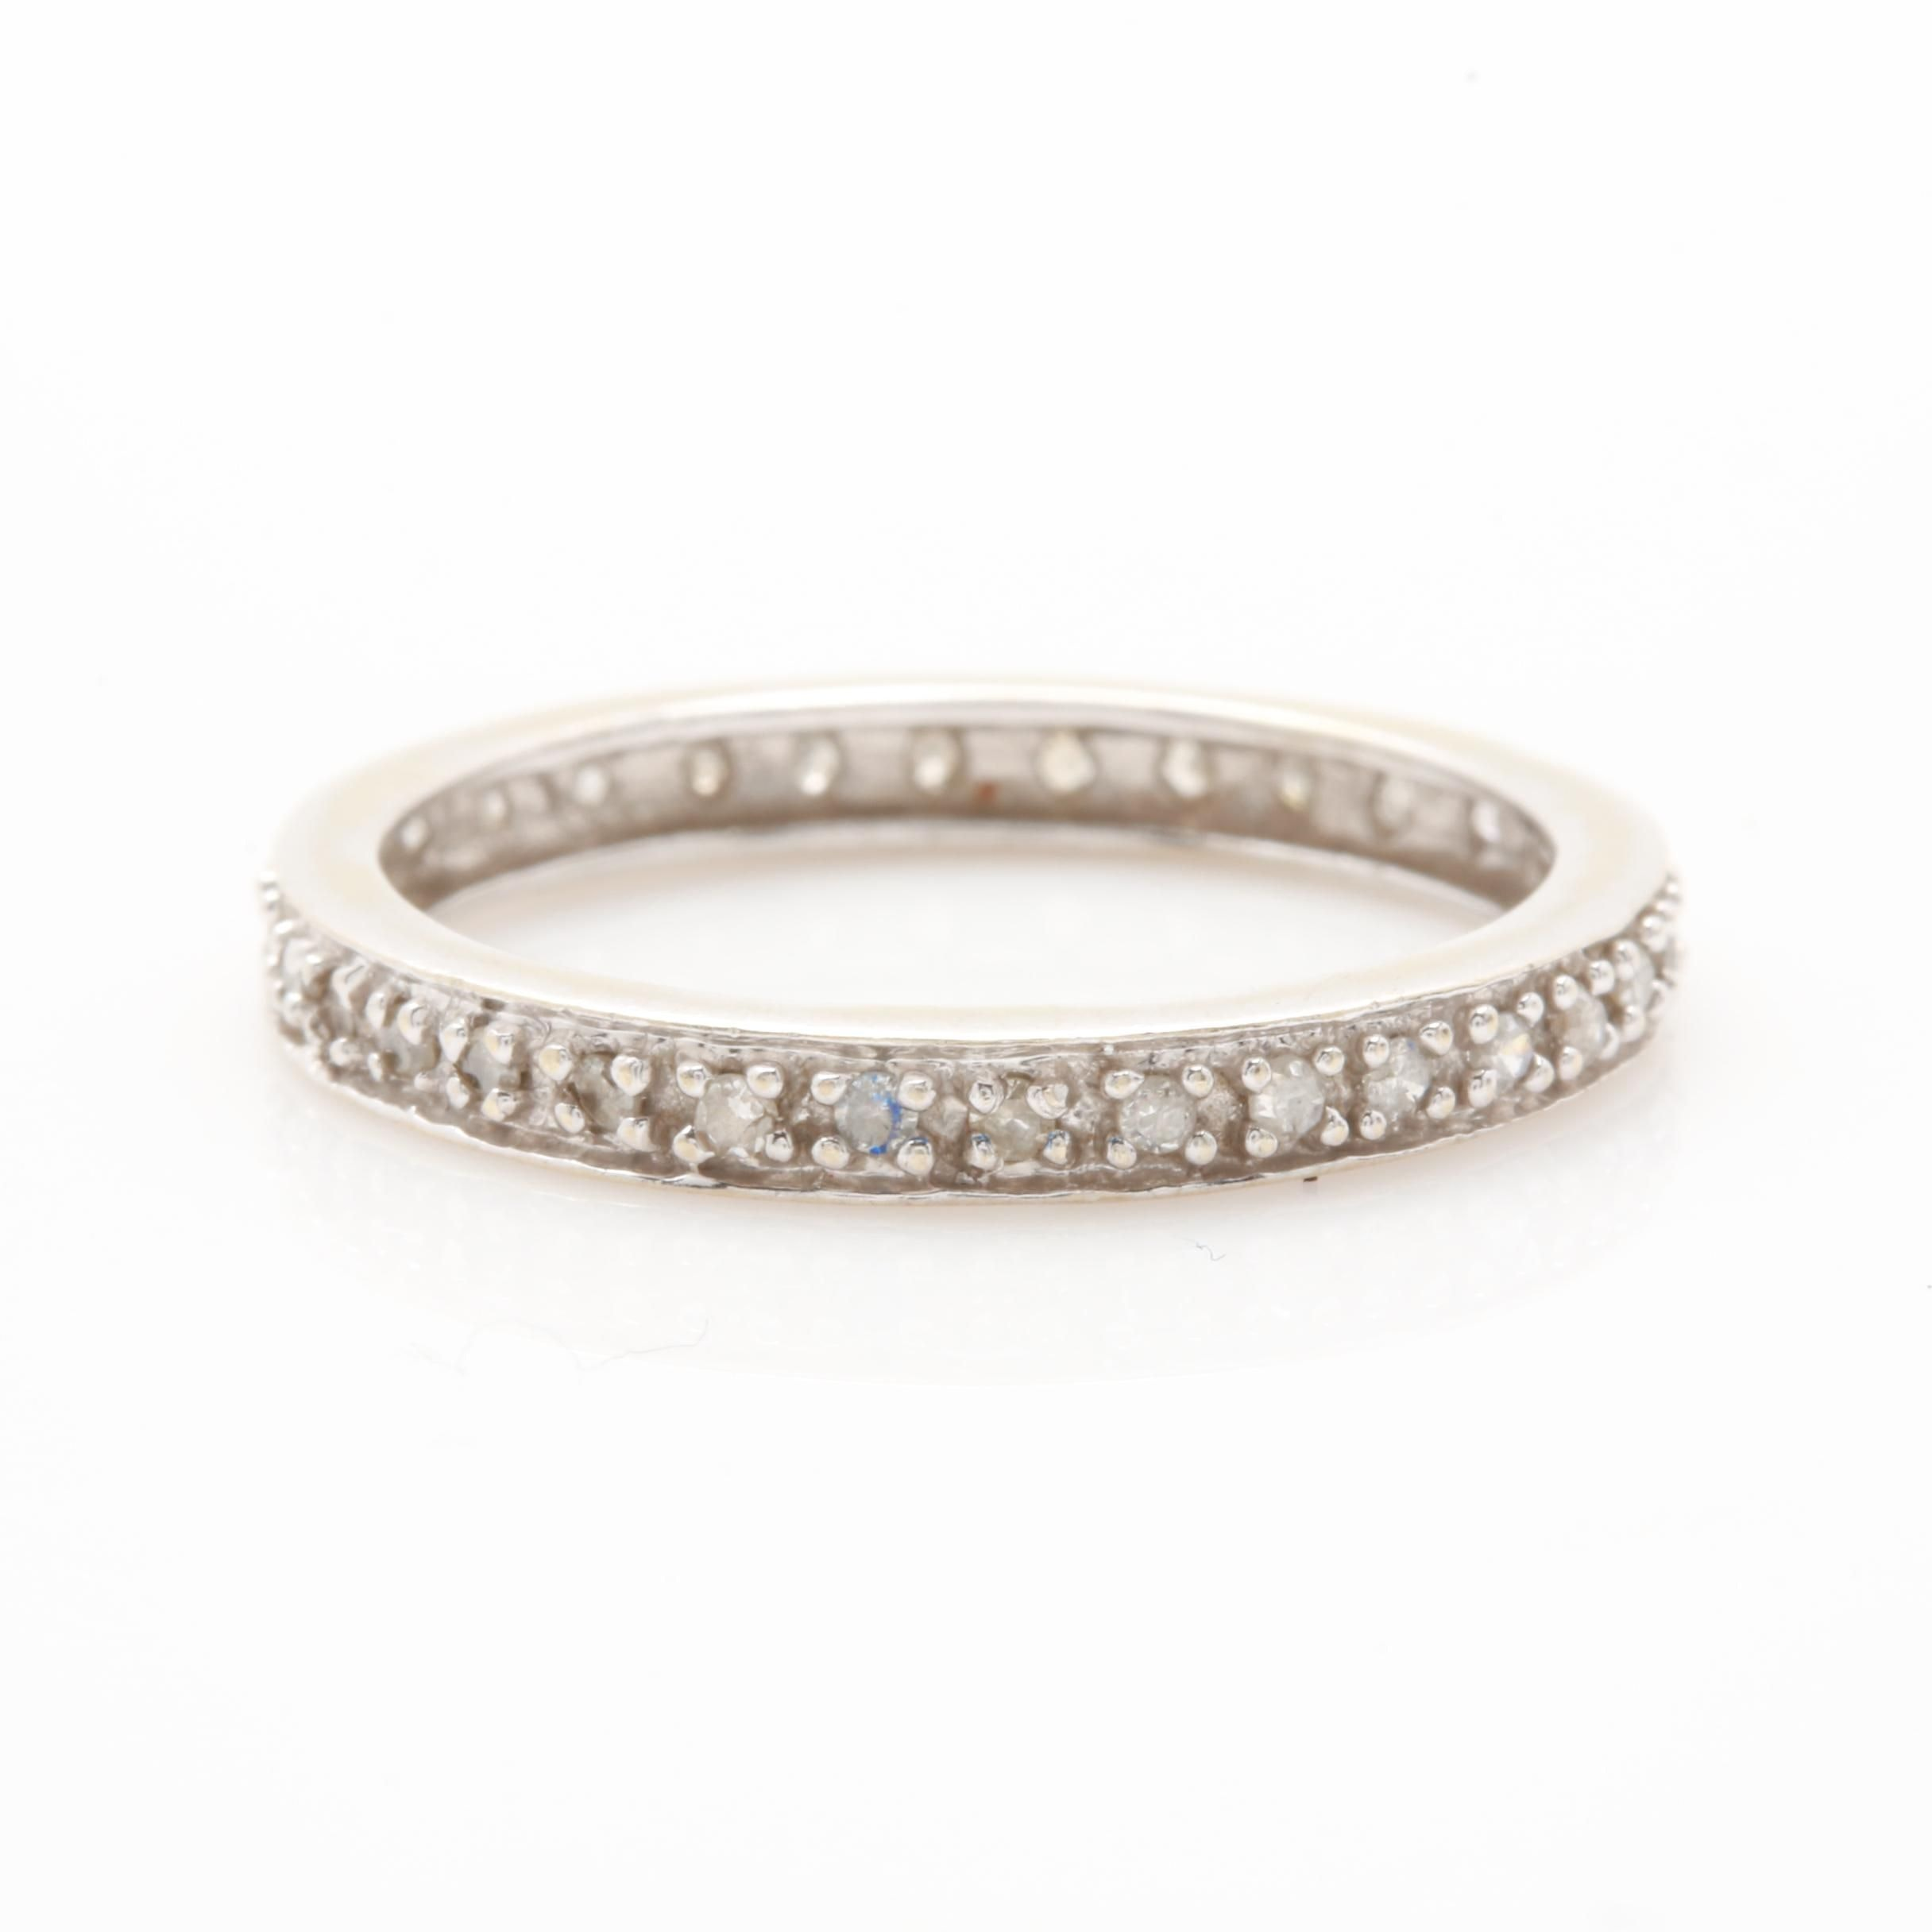 10K White Gold Diamond Eternity Ring